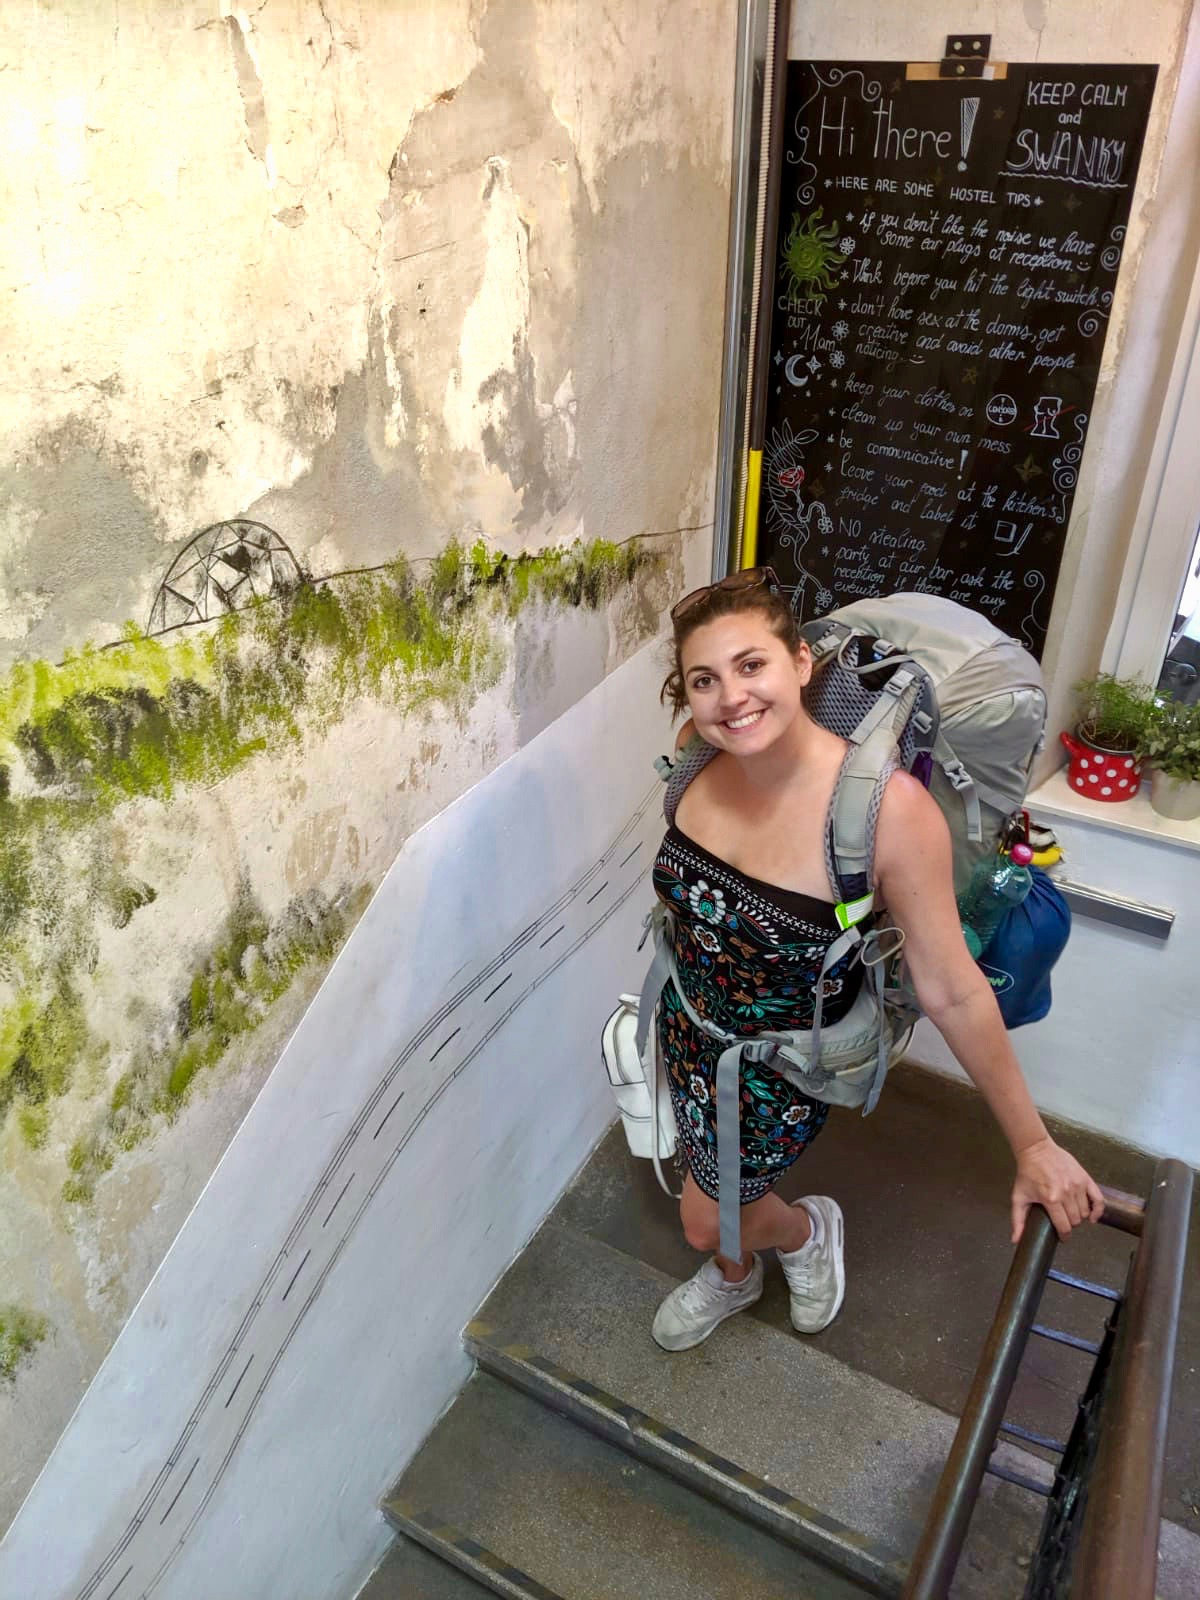 swanky mint hostel zagreb review: Nell wearing backpack on the stairs. She's looking up towards the camera and smiling